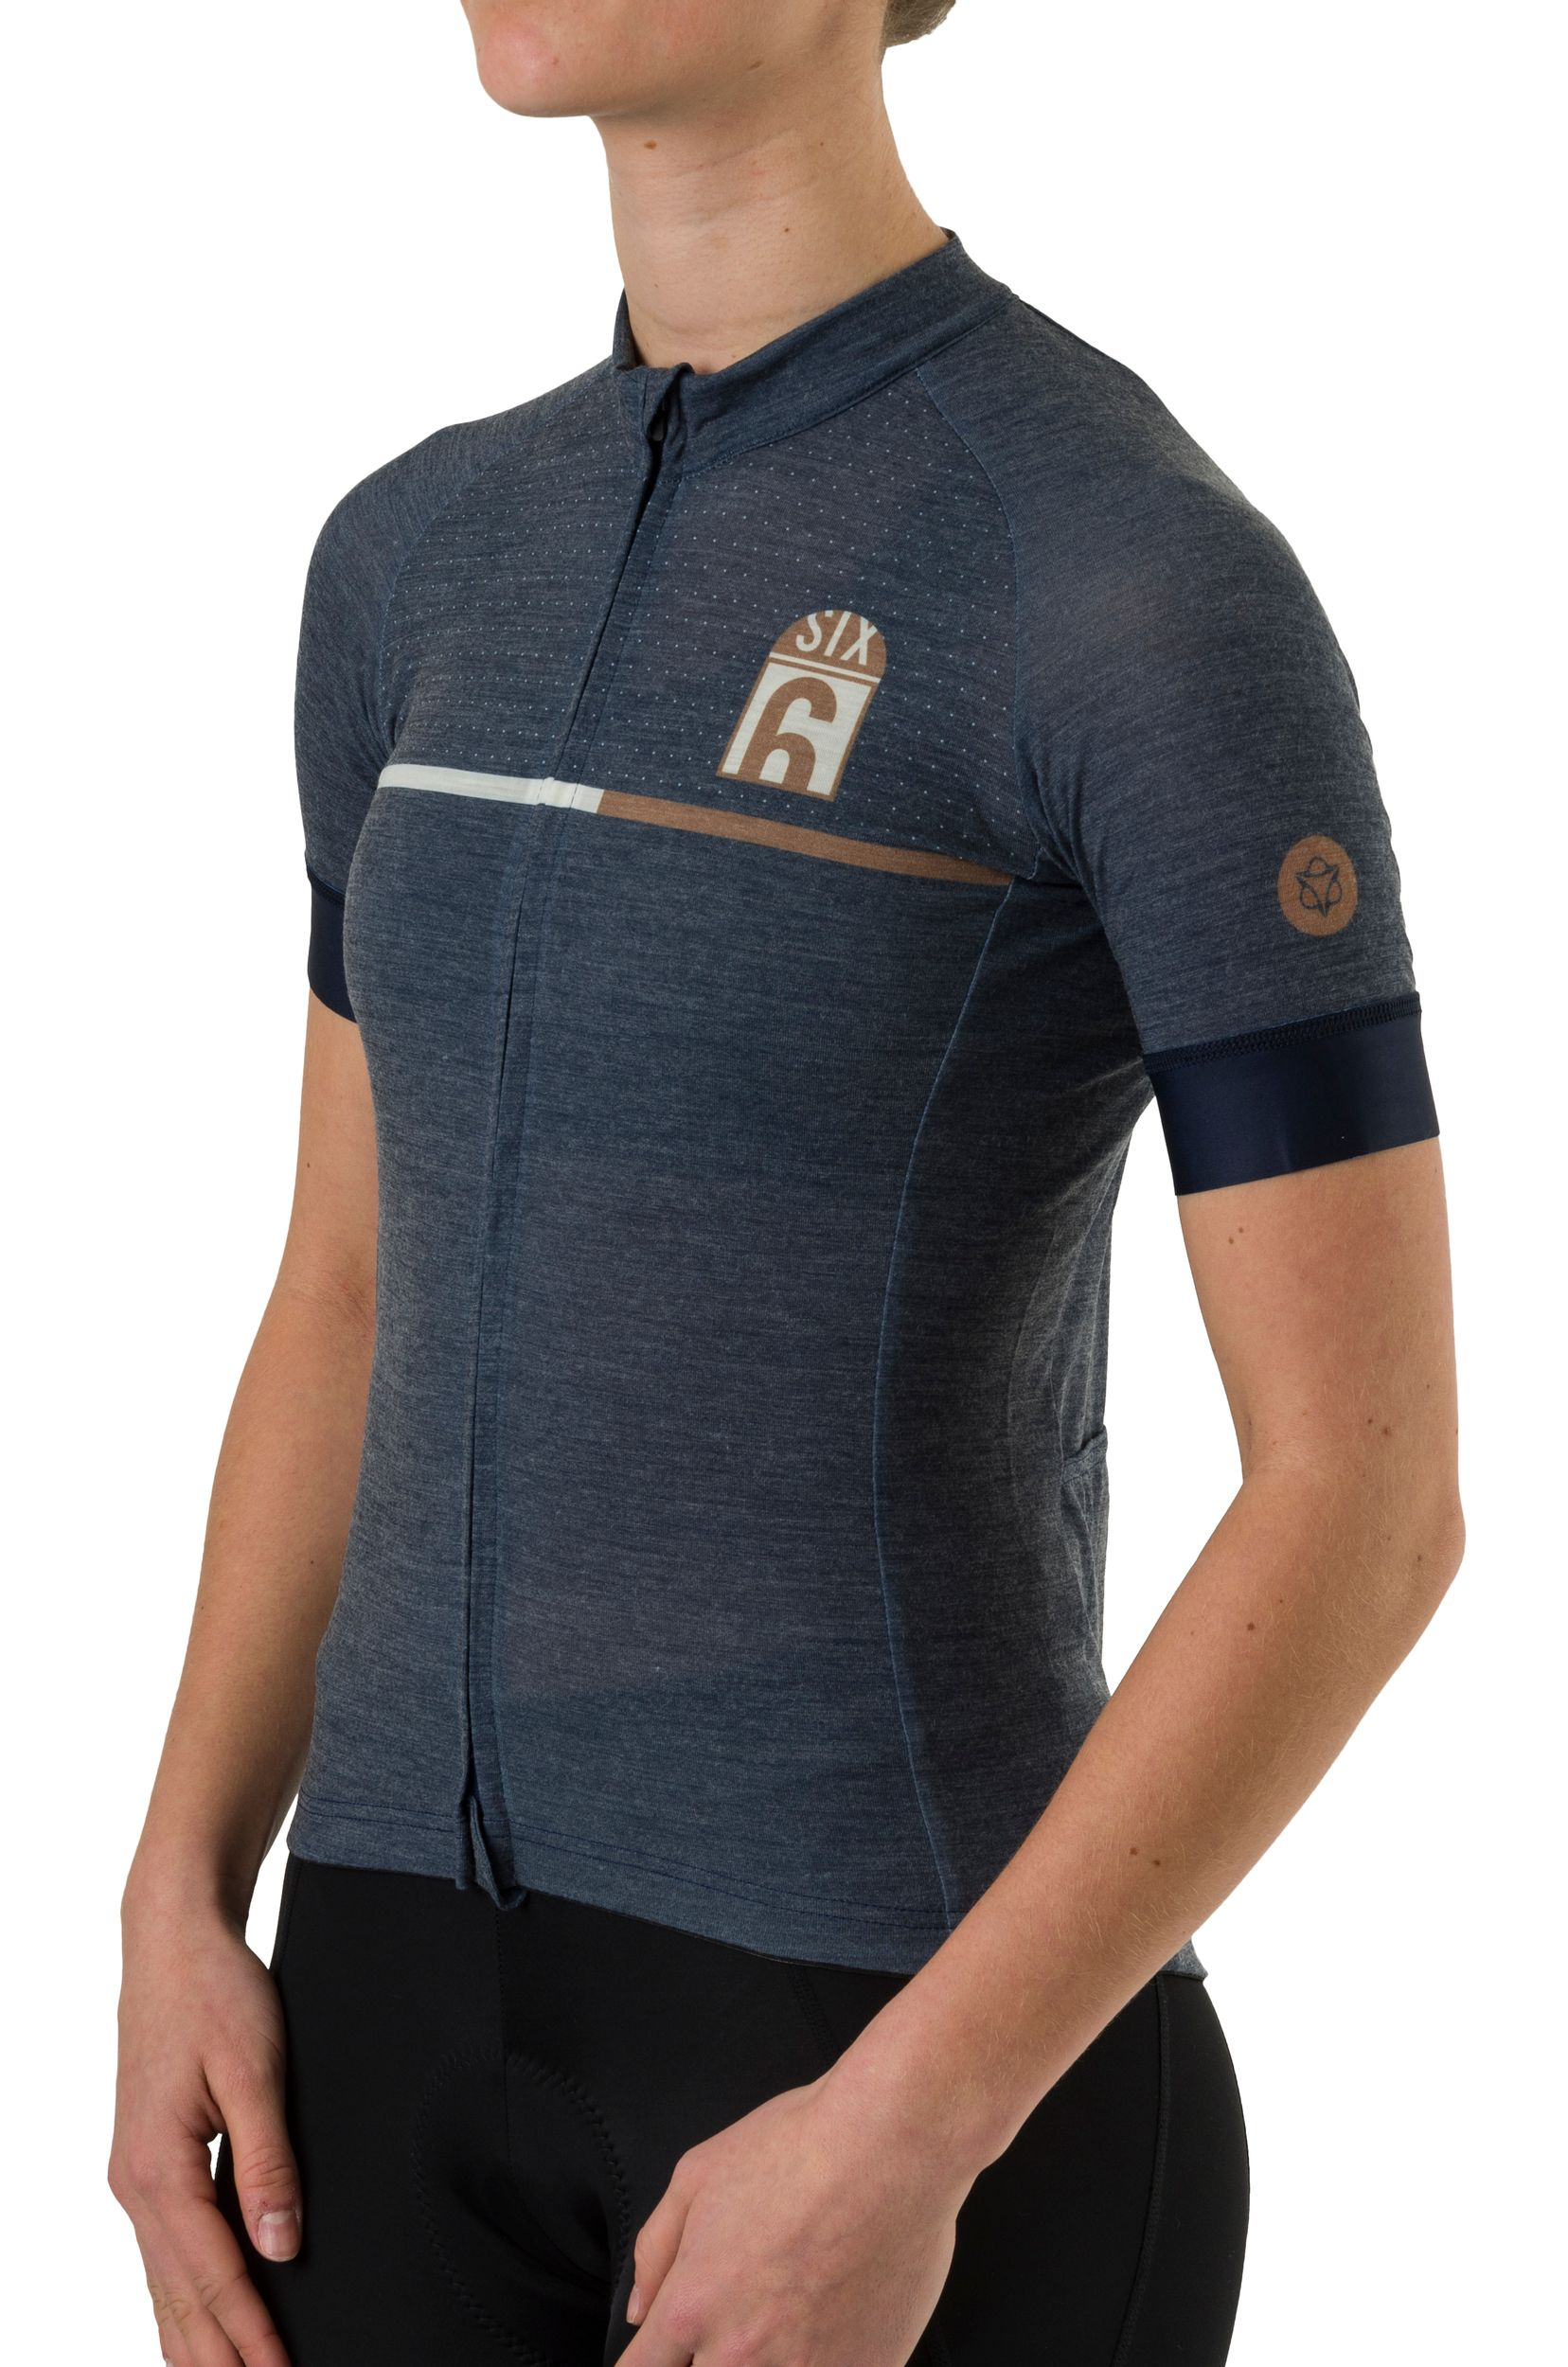 Merino Fietsshirt Six6 Dames fit example